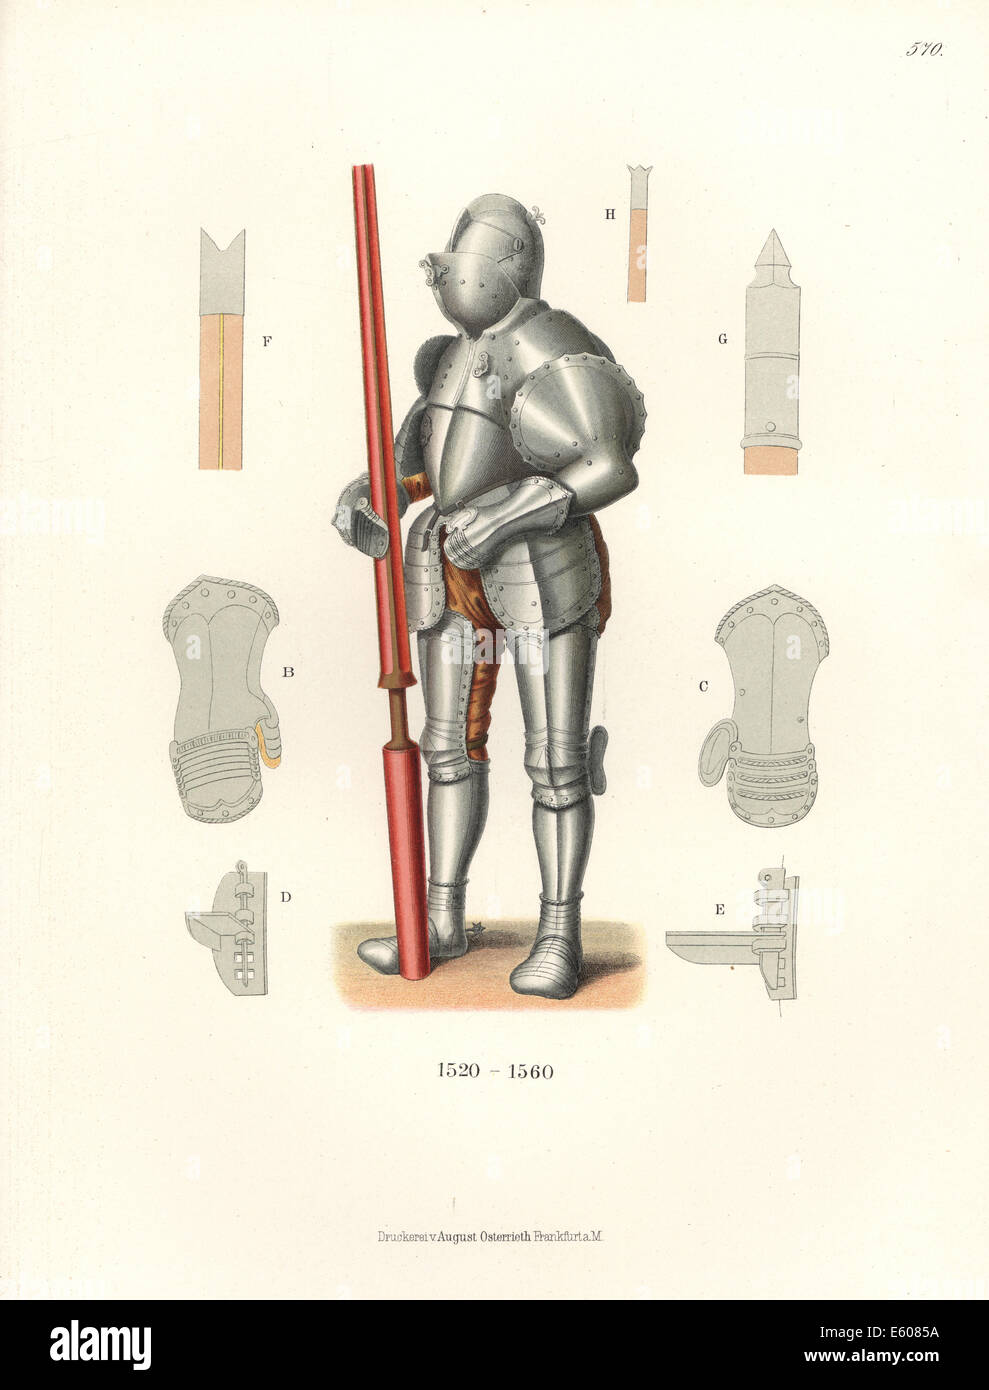 German knight in jousting armour, mid 16th century. - Stock Image